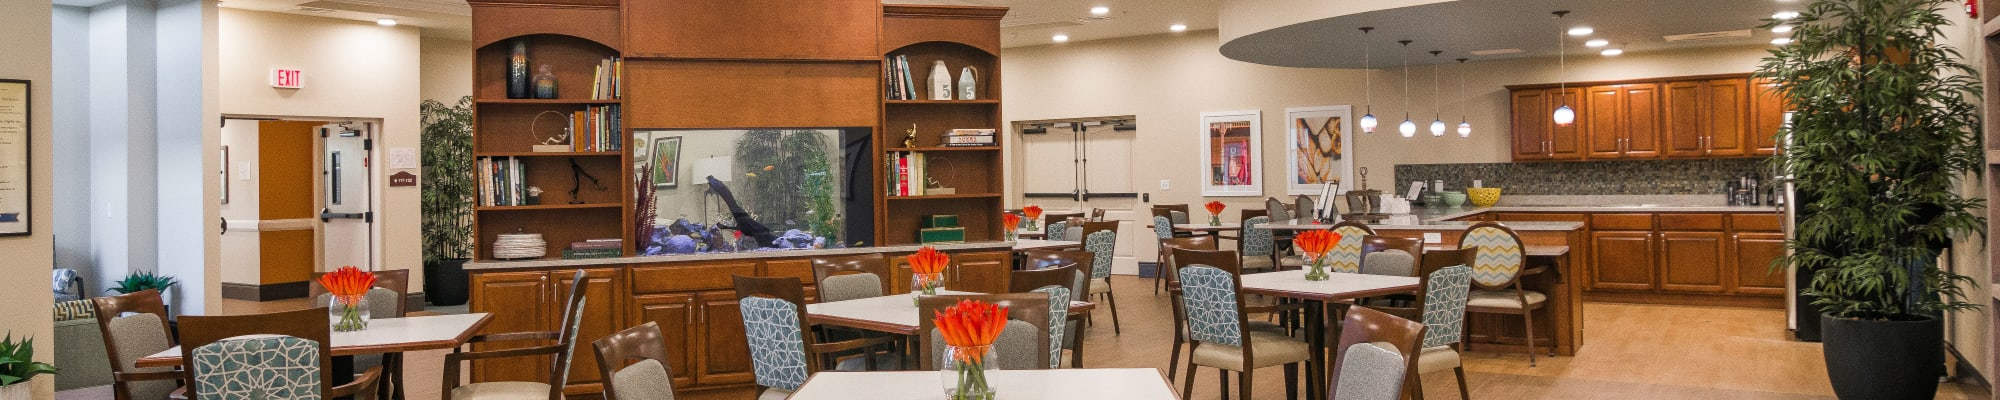 Dining at CERTUS Premier Memory Care Living in Vero Beach, Florida.